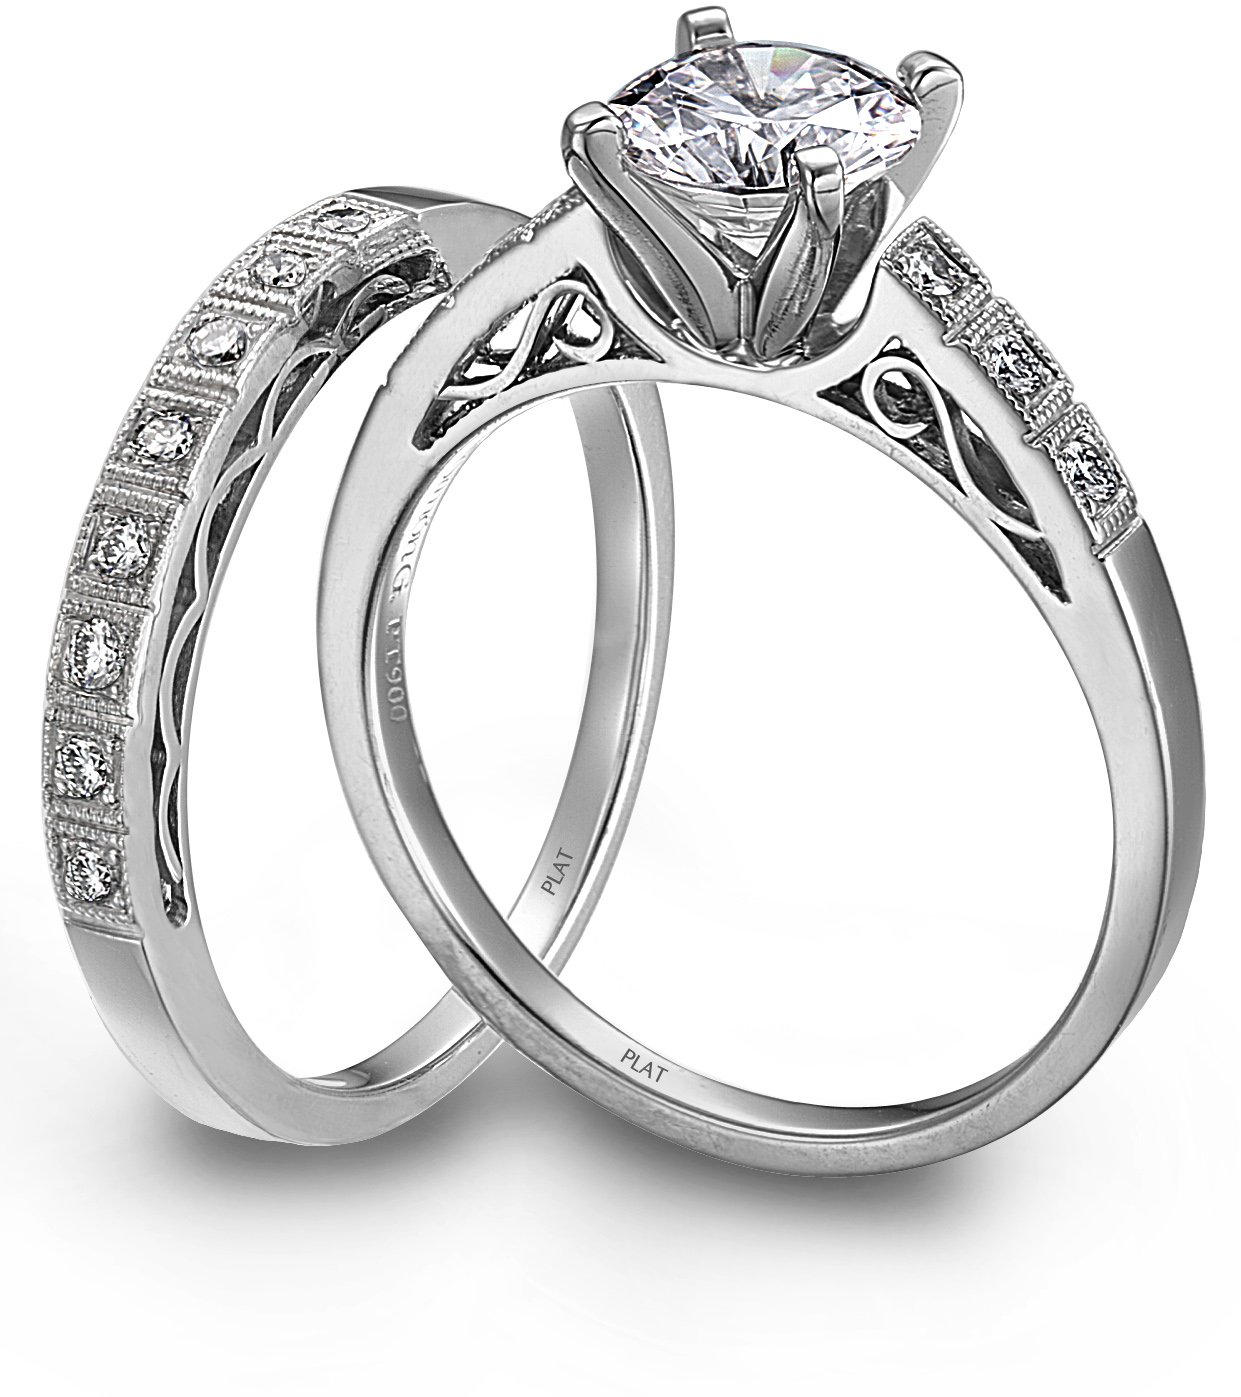 womans wedding ring - Picture Of Wedding Rings